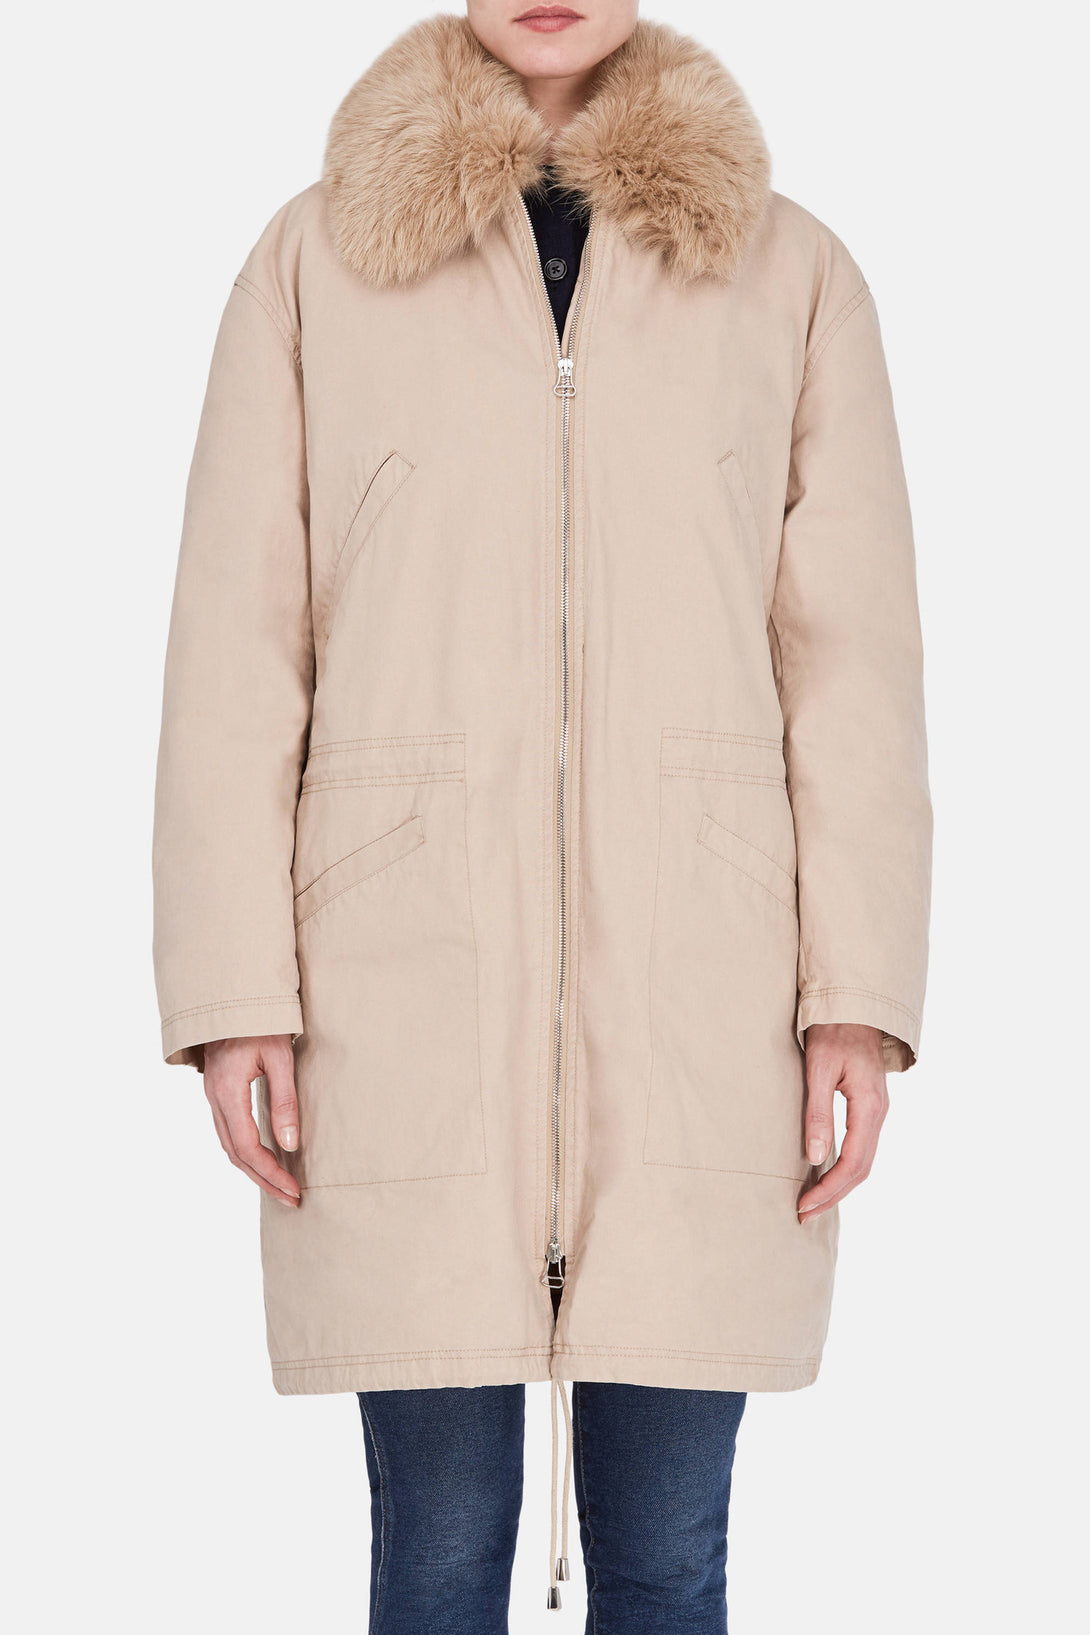 Cotton Coat with Nylon Lining and Fox Collar - Sand